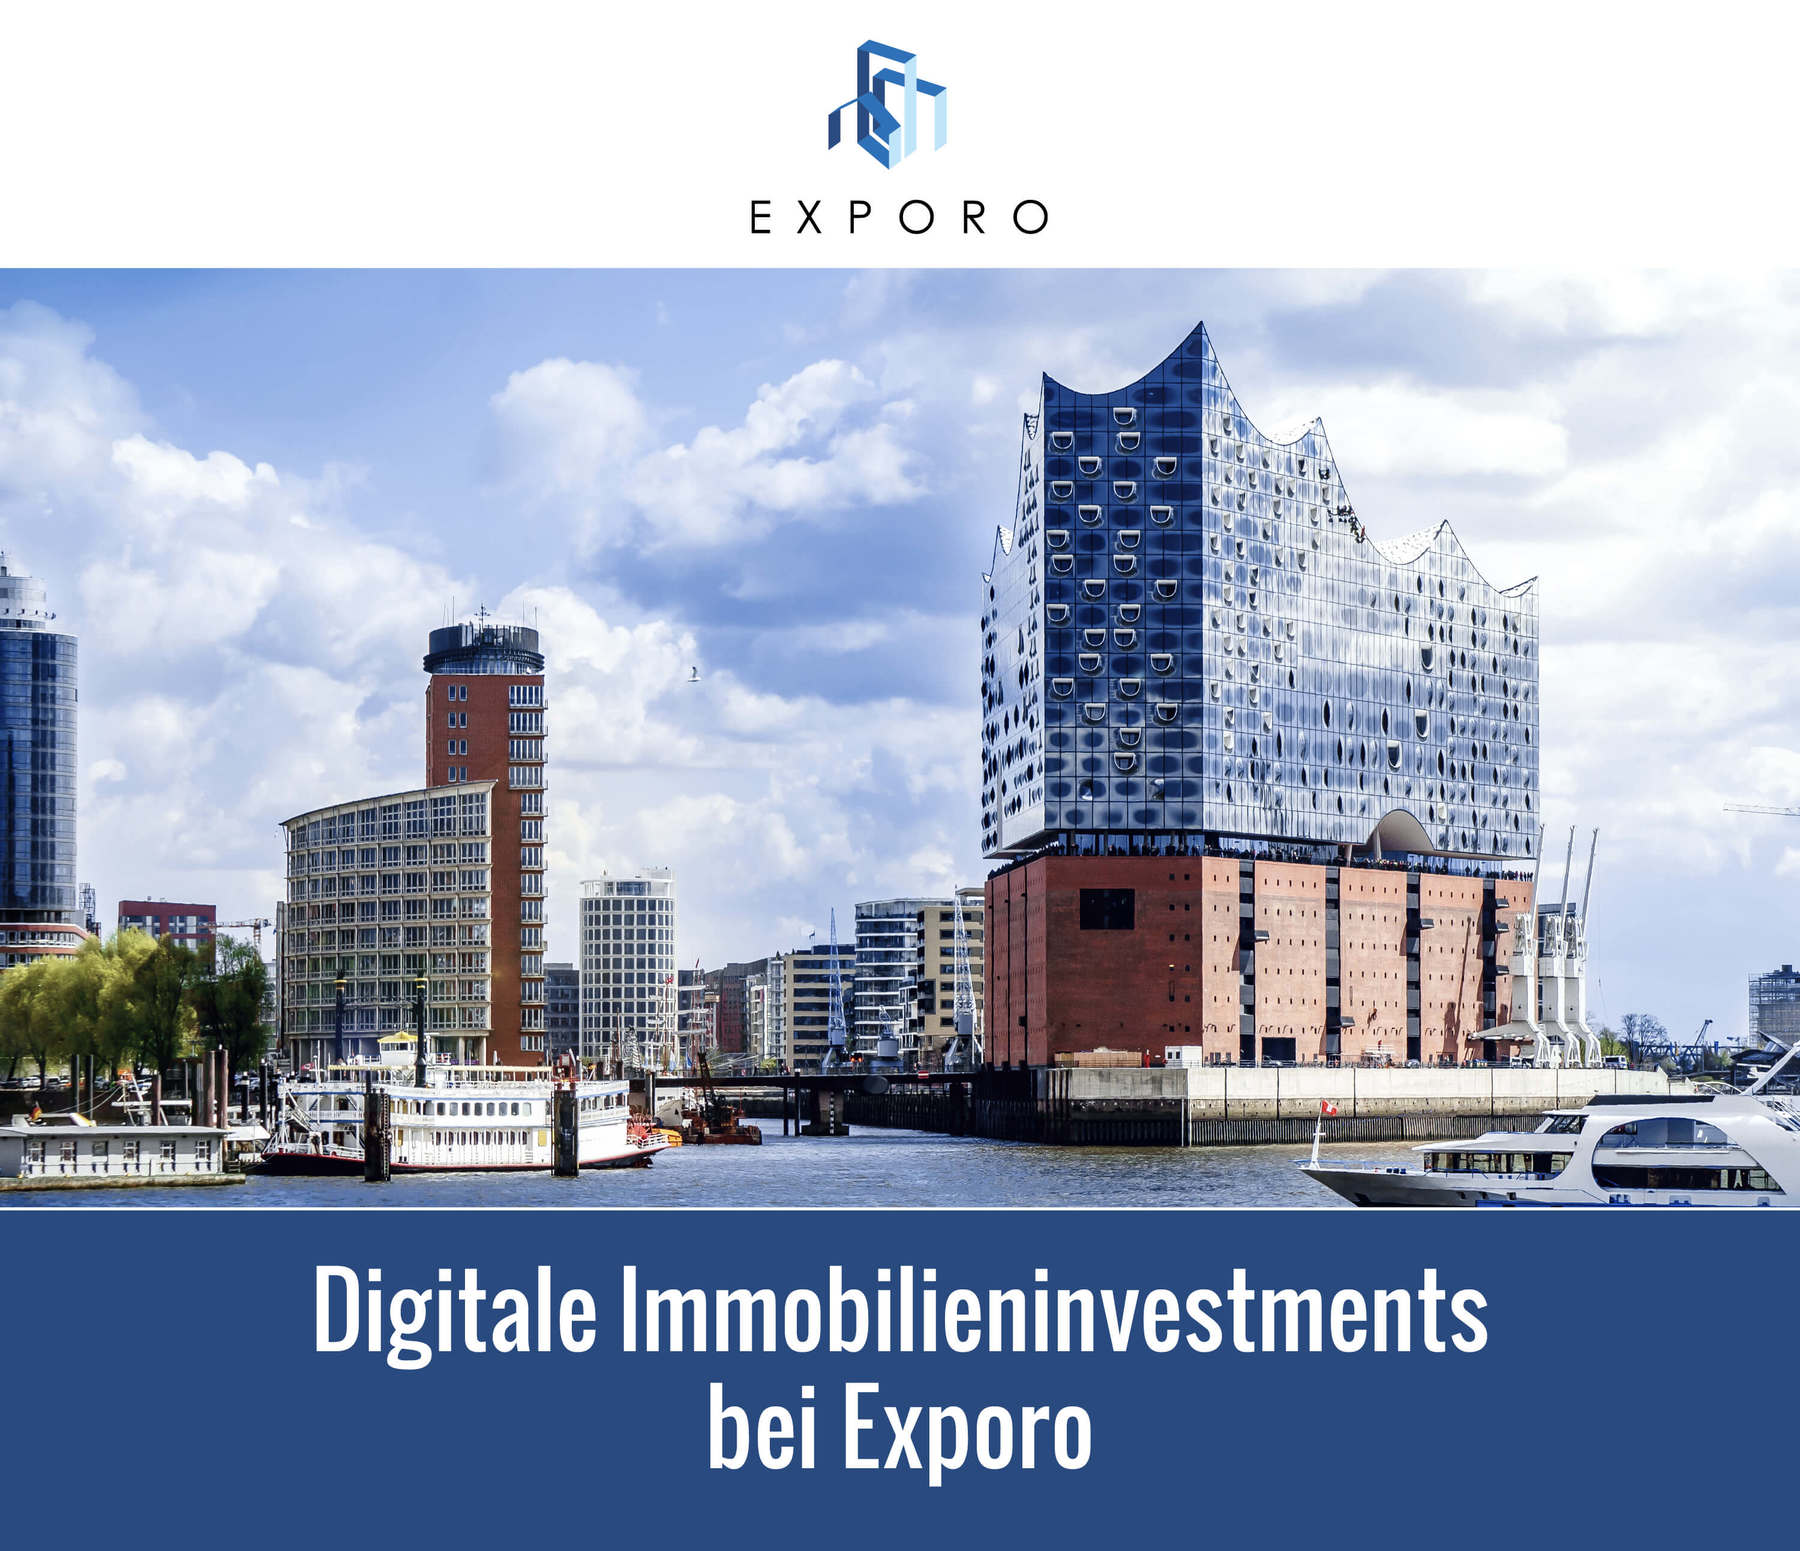 Digitale Immobilieninvestments bei Exporo